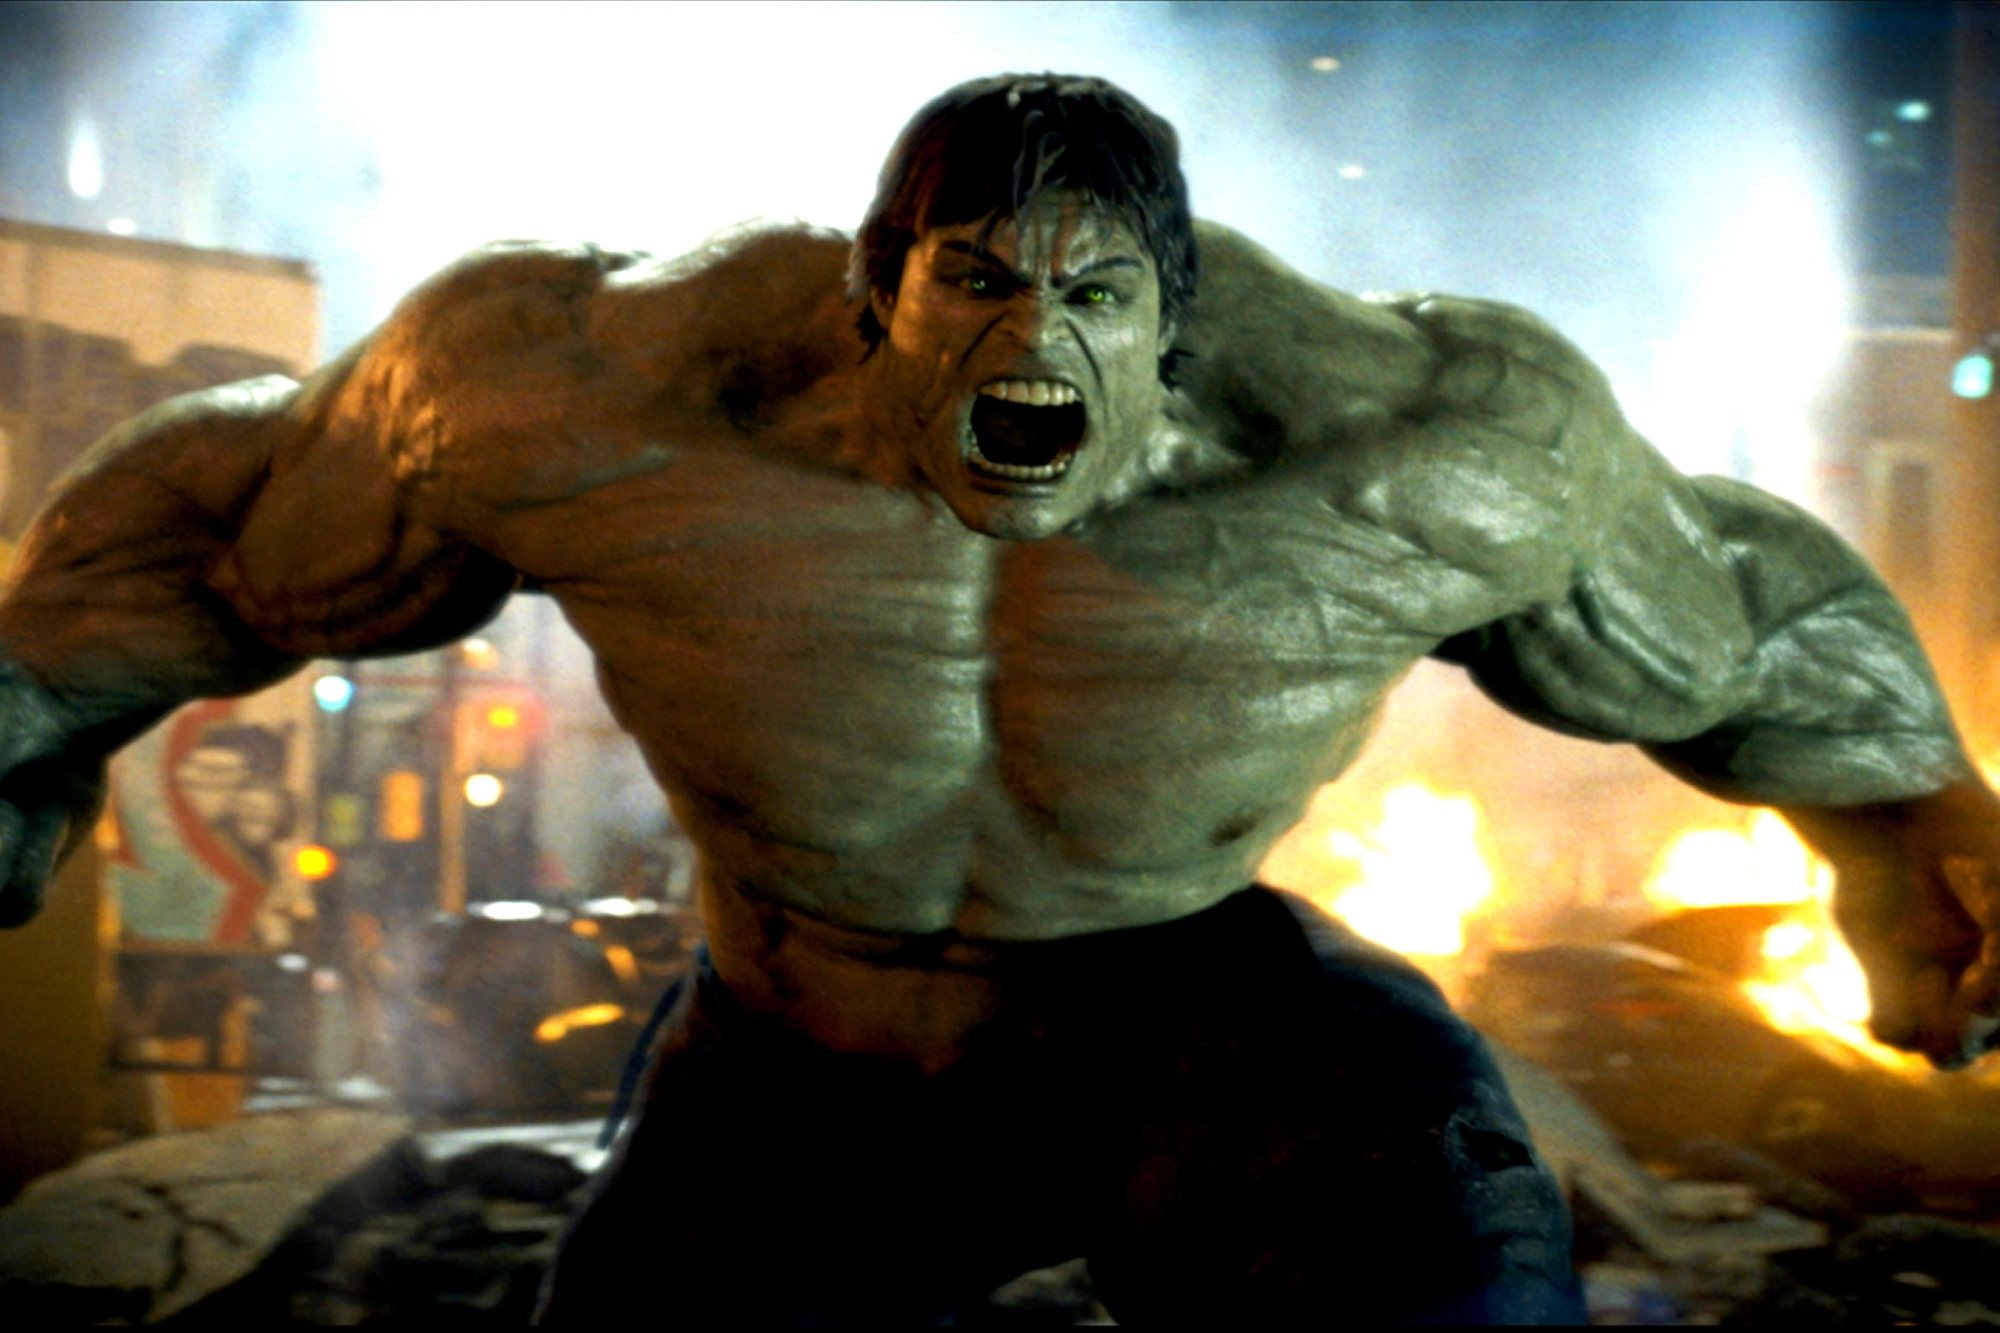 The Incredible Hulk (2008)Hulk